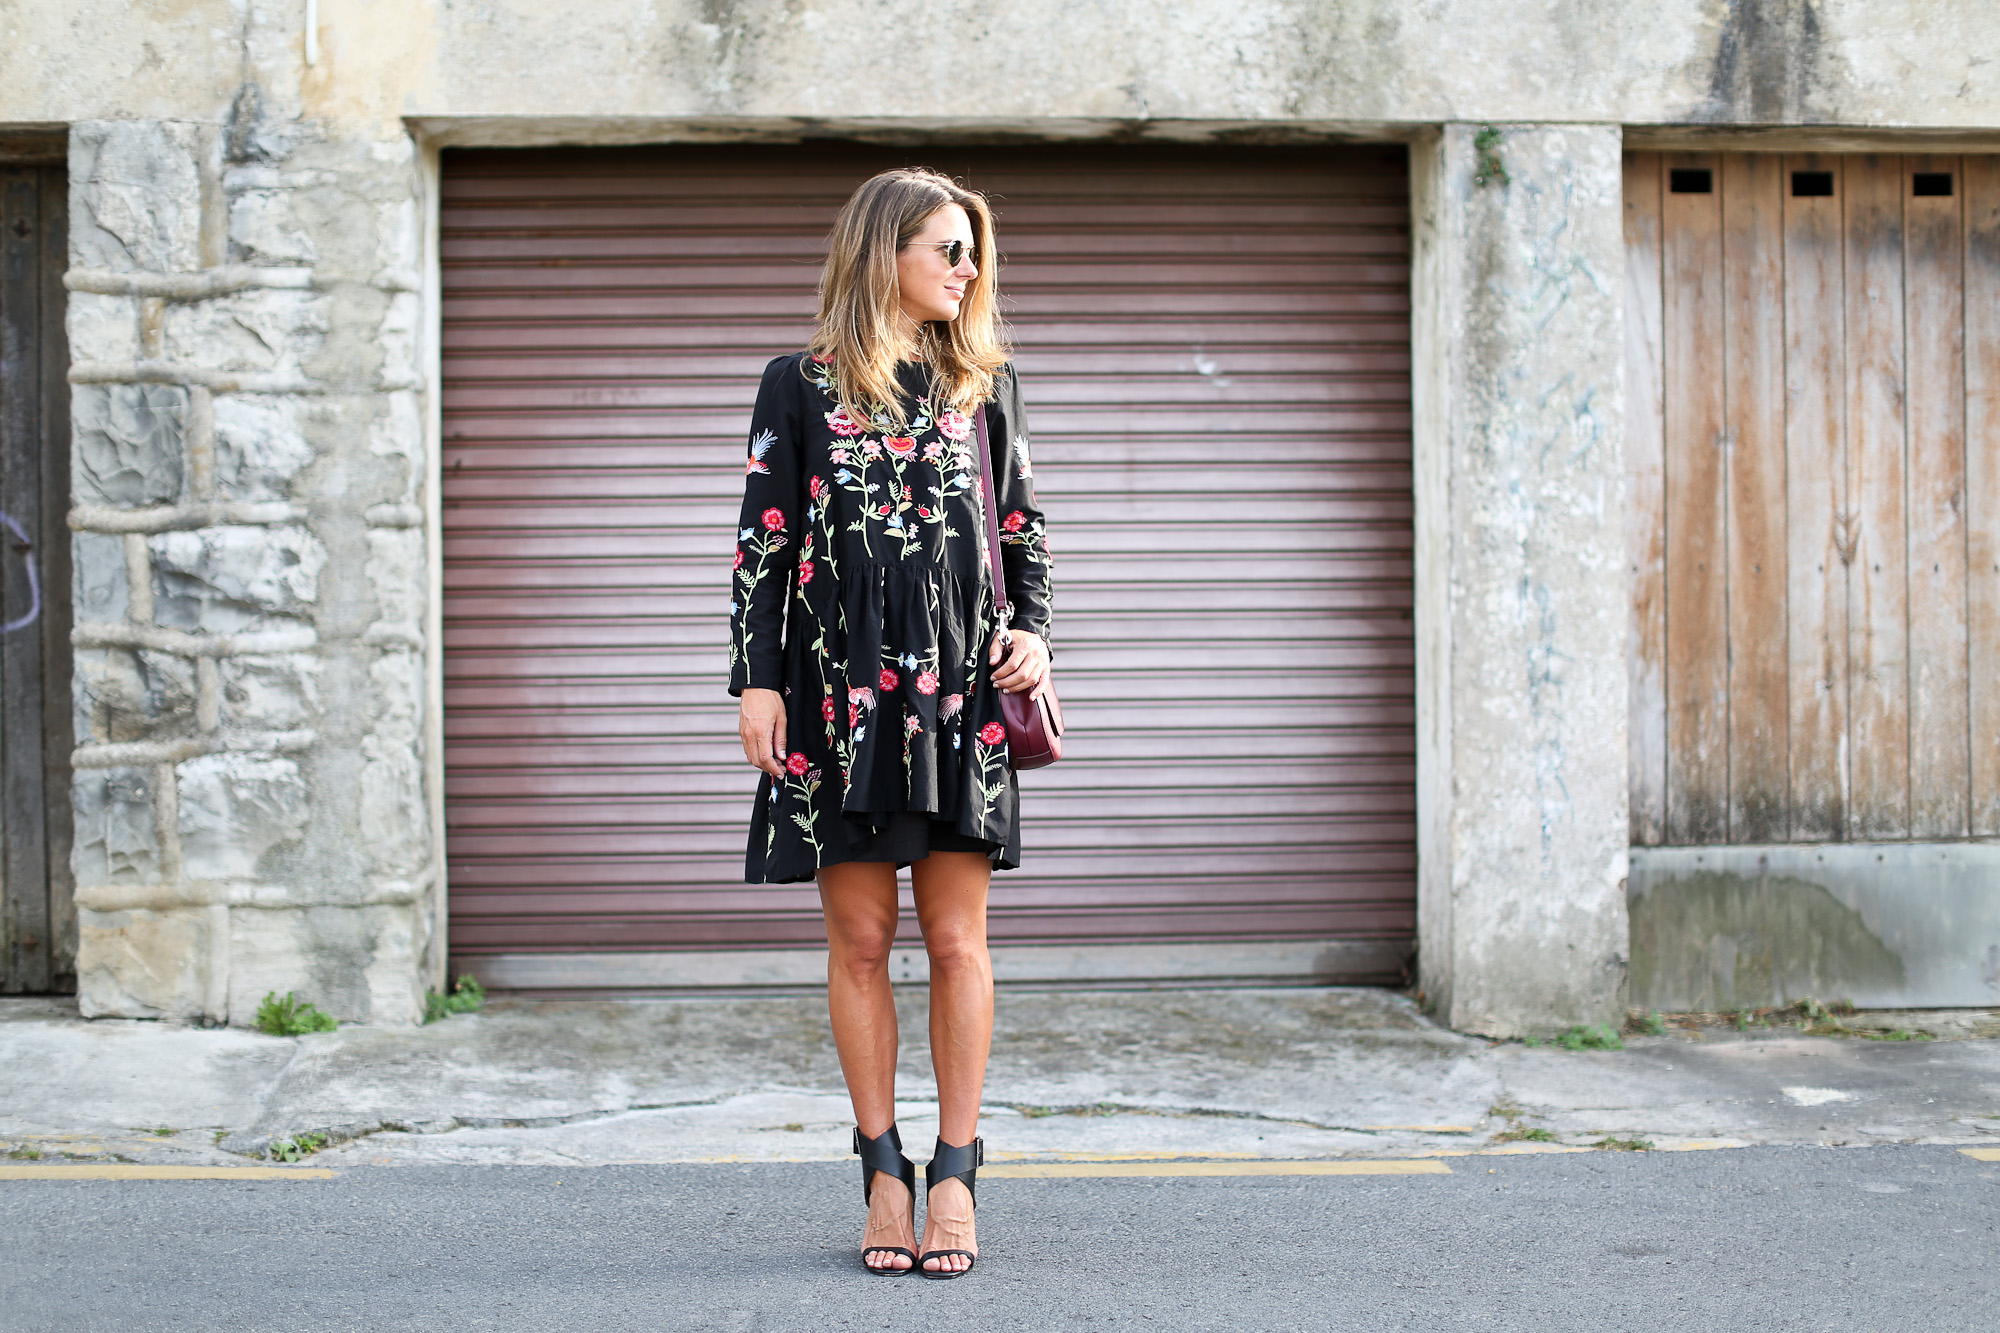 Clochet_streetstyle_zara_embroided_littleblackdress_purificaciongarcia_bandolera_westfalia-2